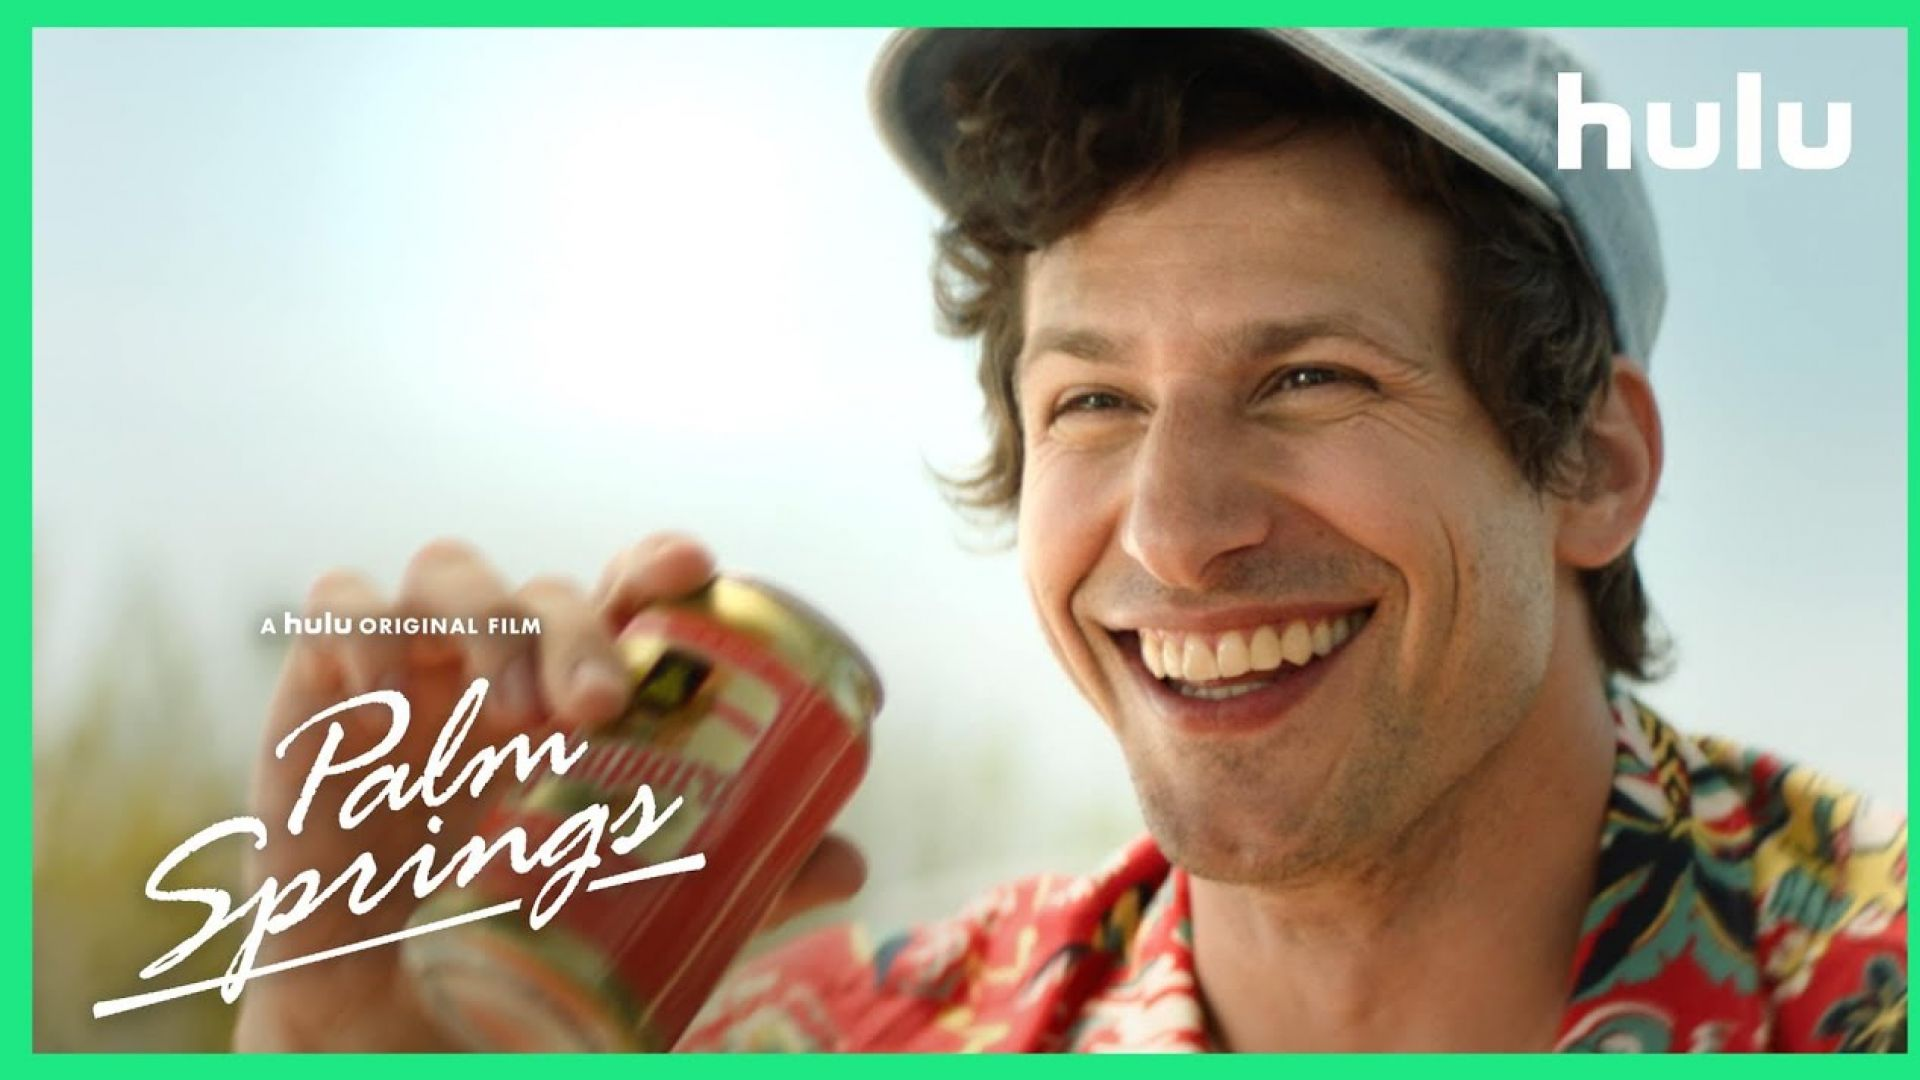 Trailer for Sundance hit 'Palm Springs' with Andy Samberg